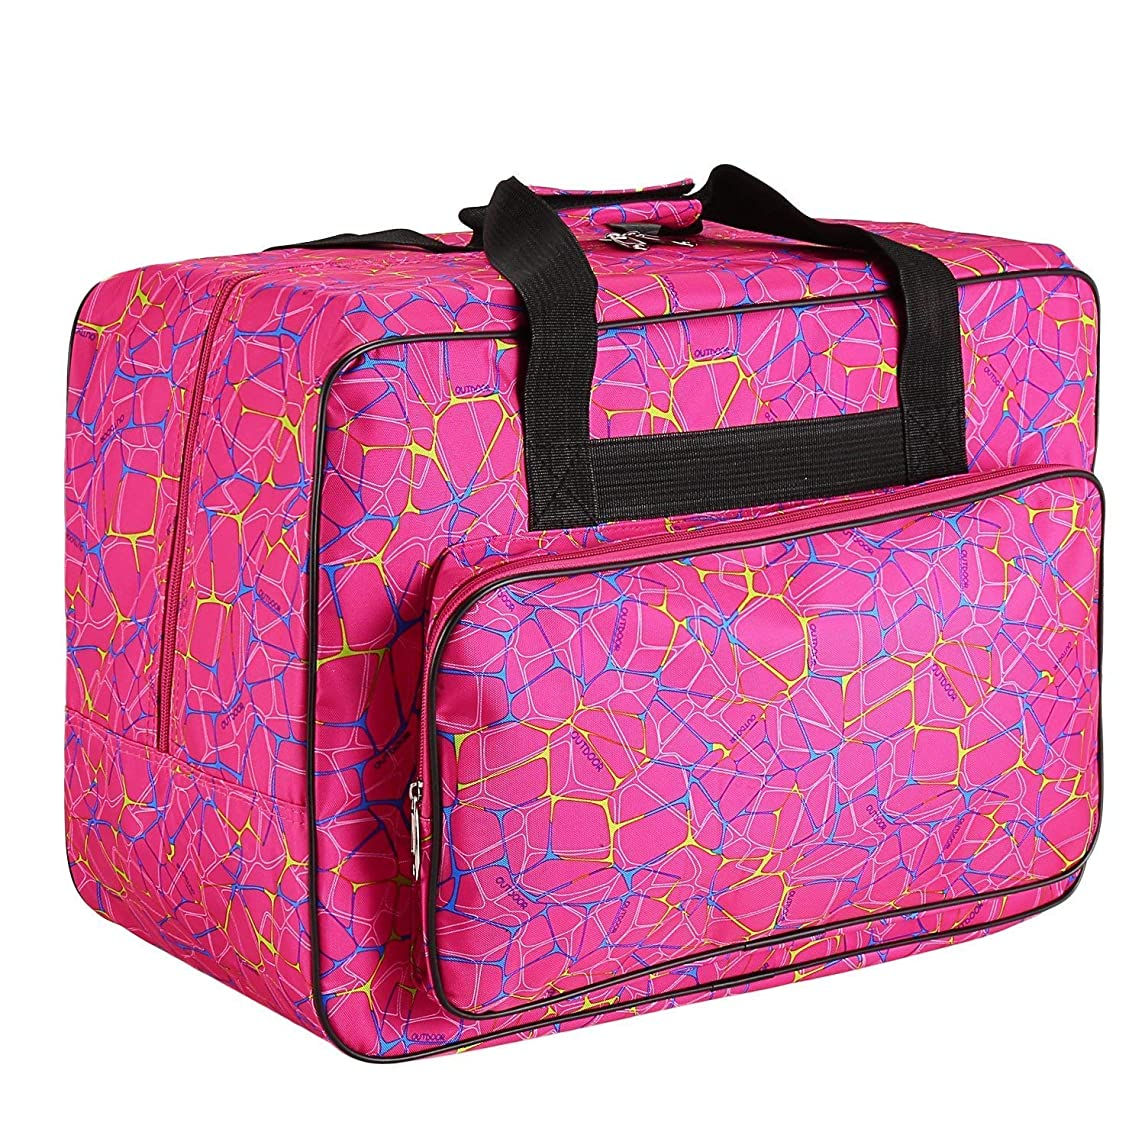 Sewing Machine Carrying Case Tote Bag,Universal Nylon Carry Bag, Universal Padded Storage Cover Carrying Case with Pockets and Handles (Rose Red)